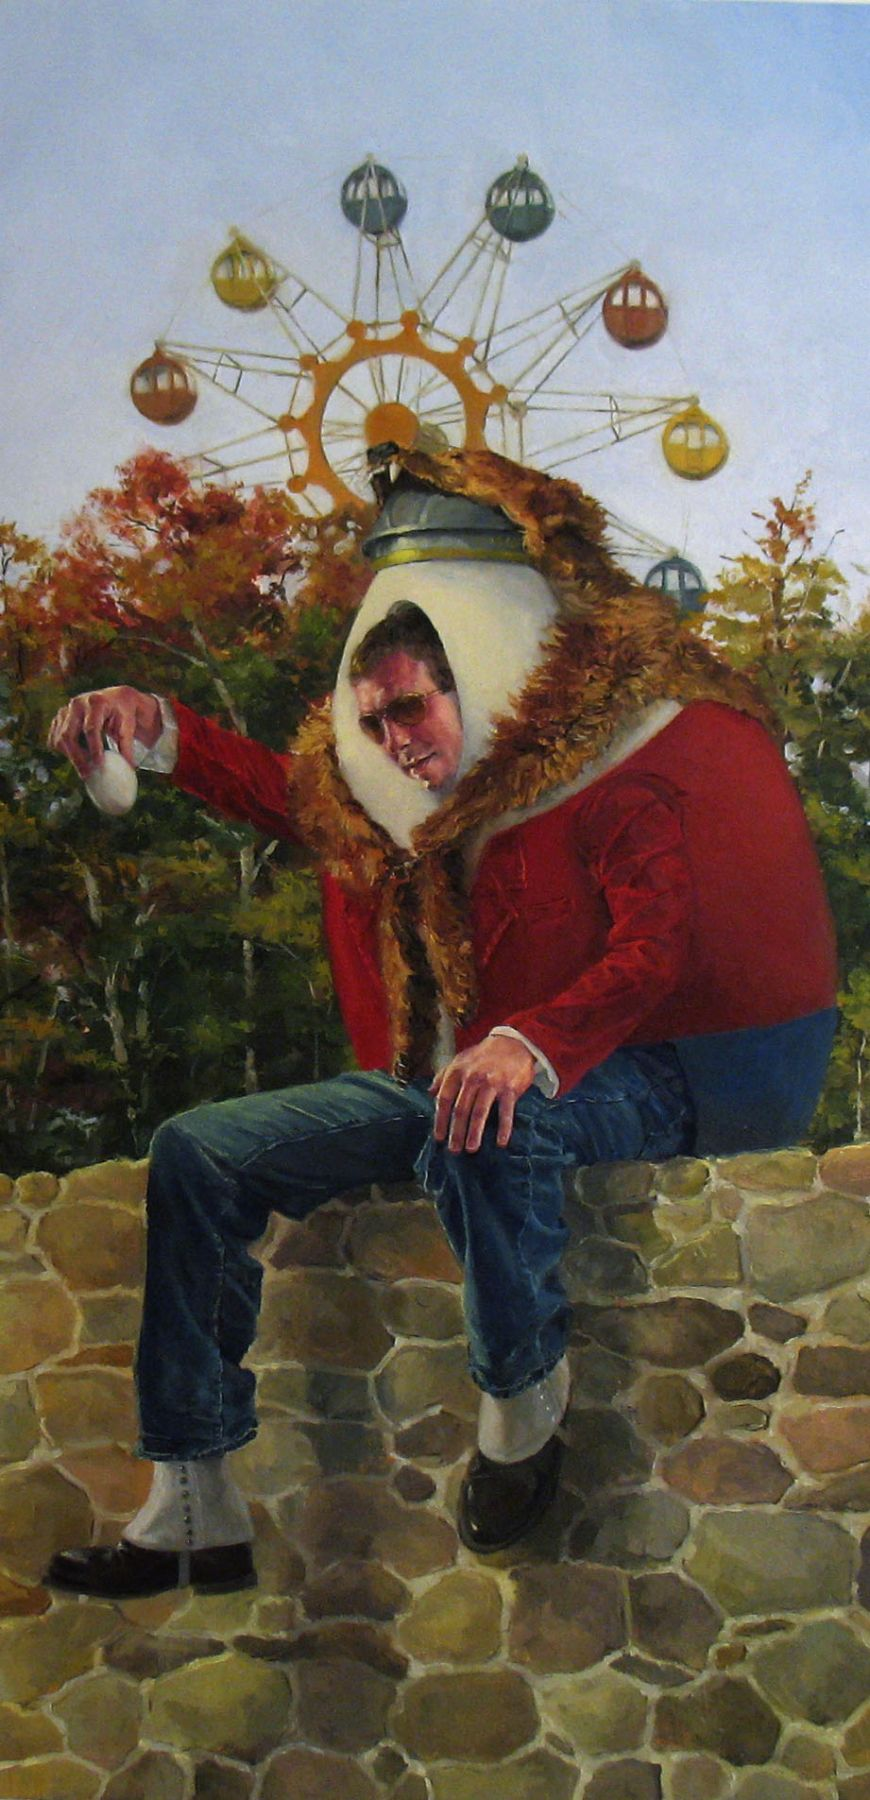 NATHANIEL ROGERS Dumpty 2009, oil on panel, 12 x 6 inches.